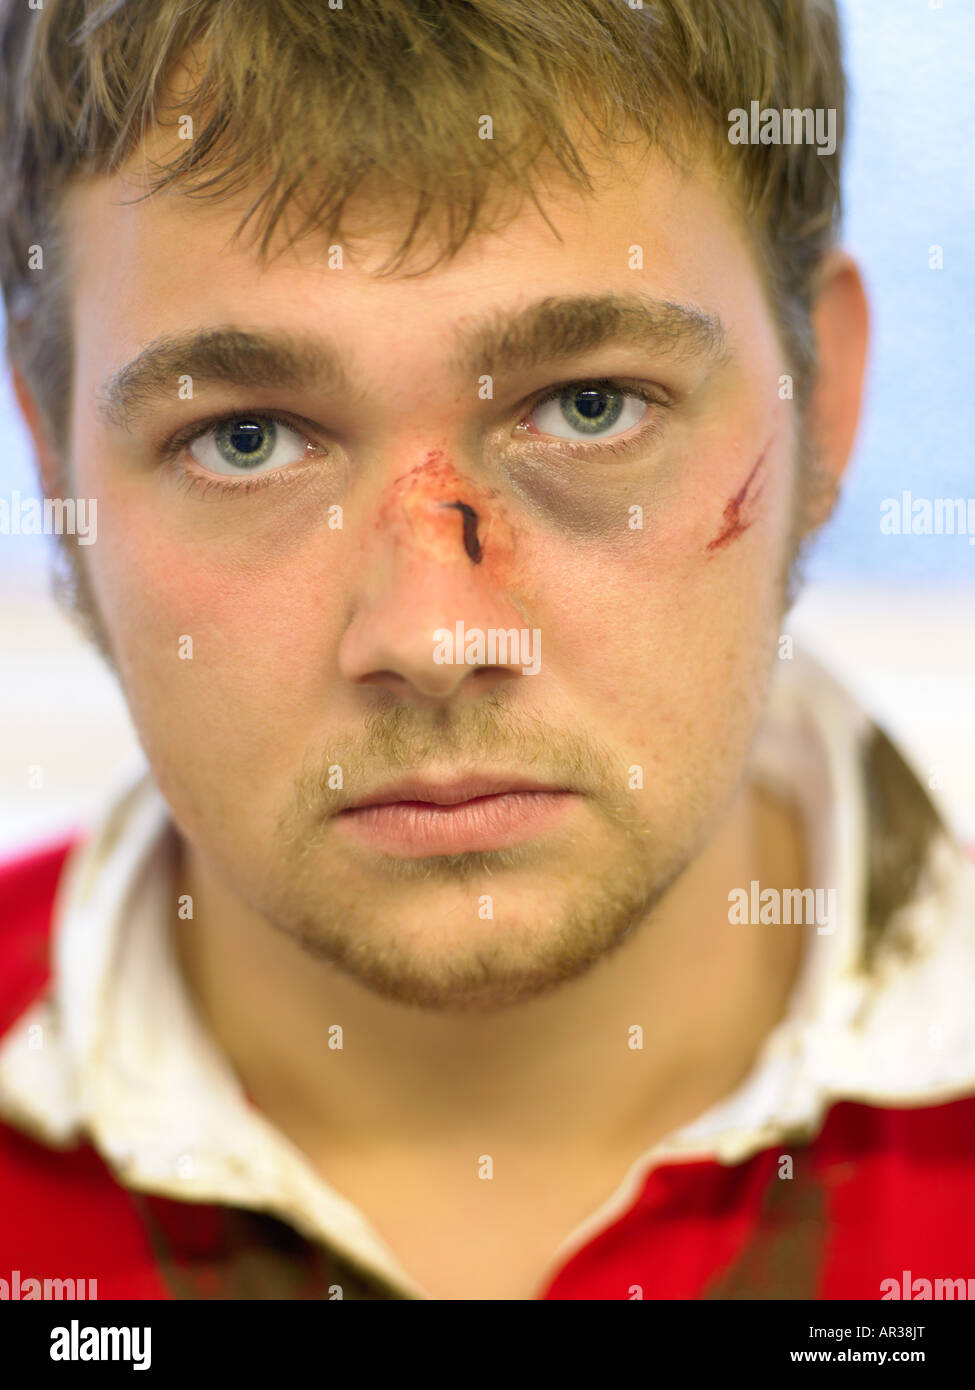 Bruised and cut rugby player - Stock Image